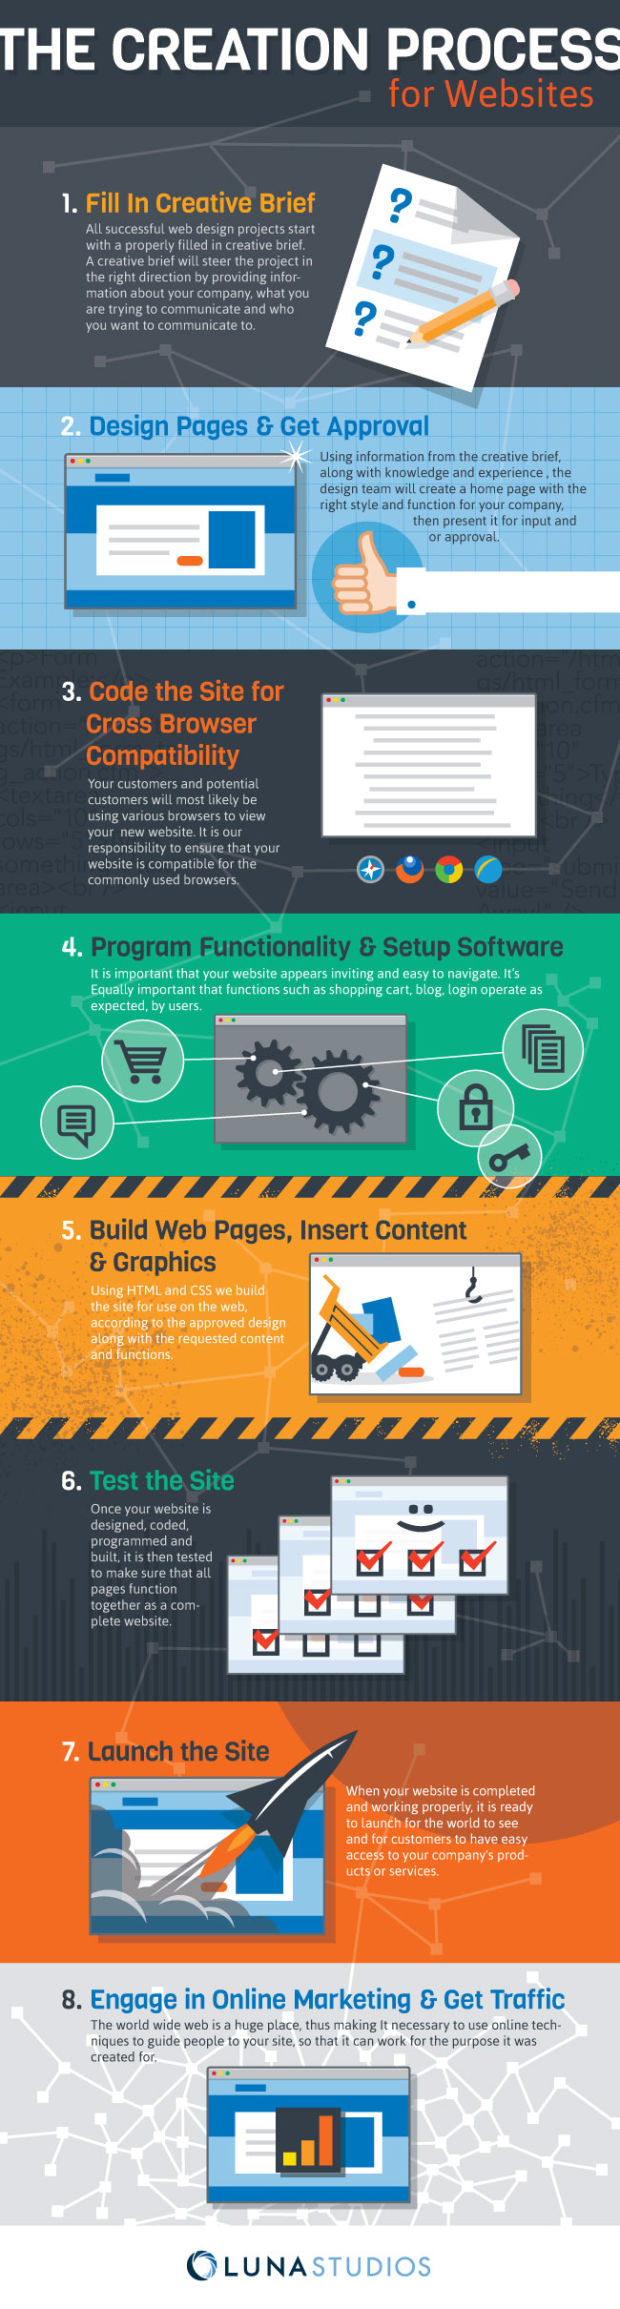 The Creation Process for Websites